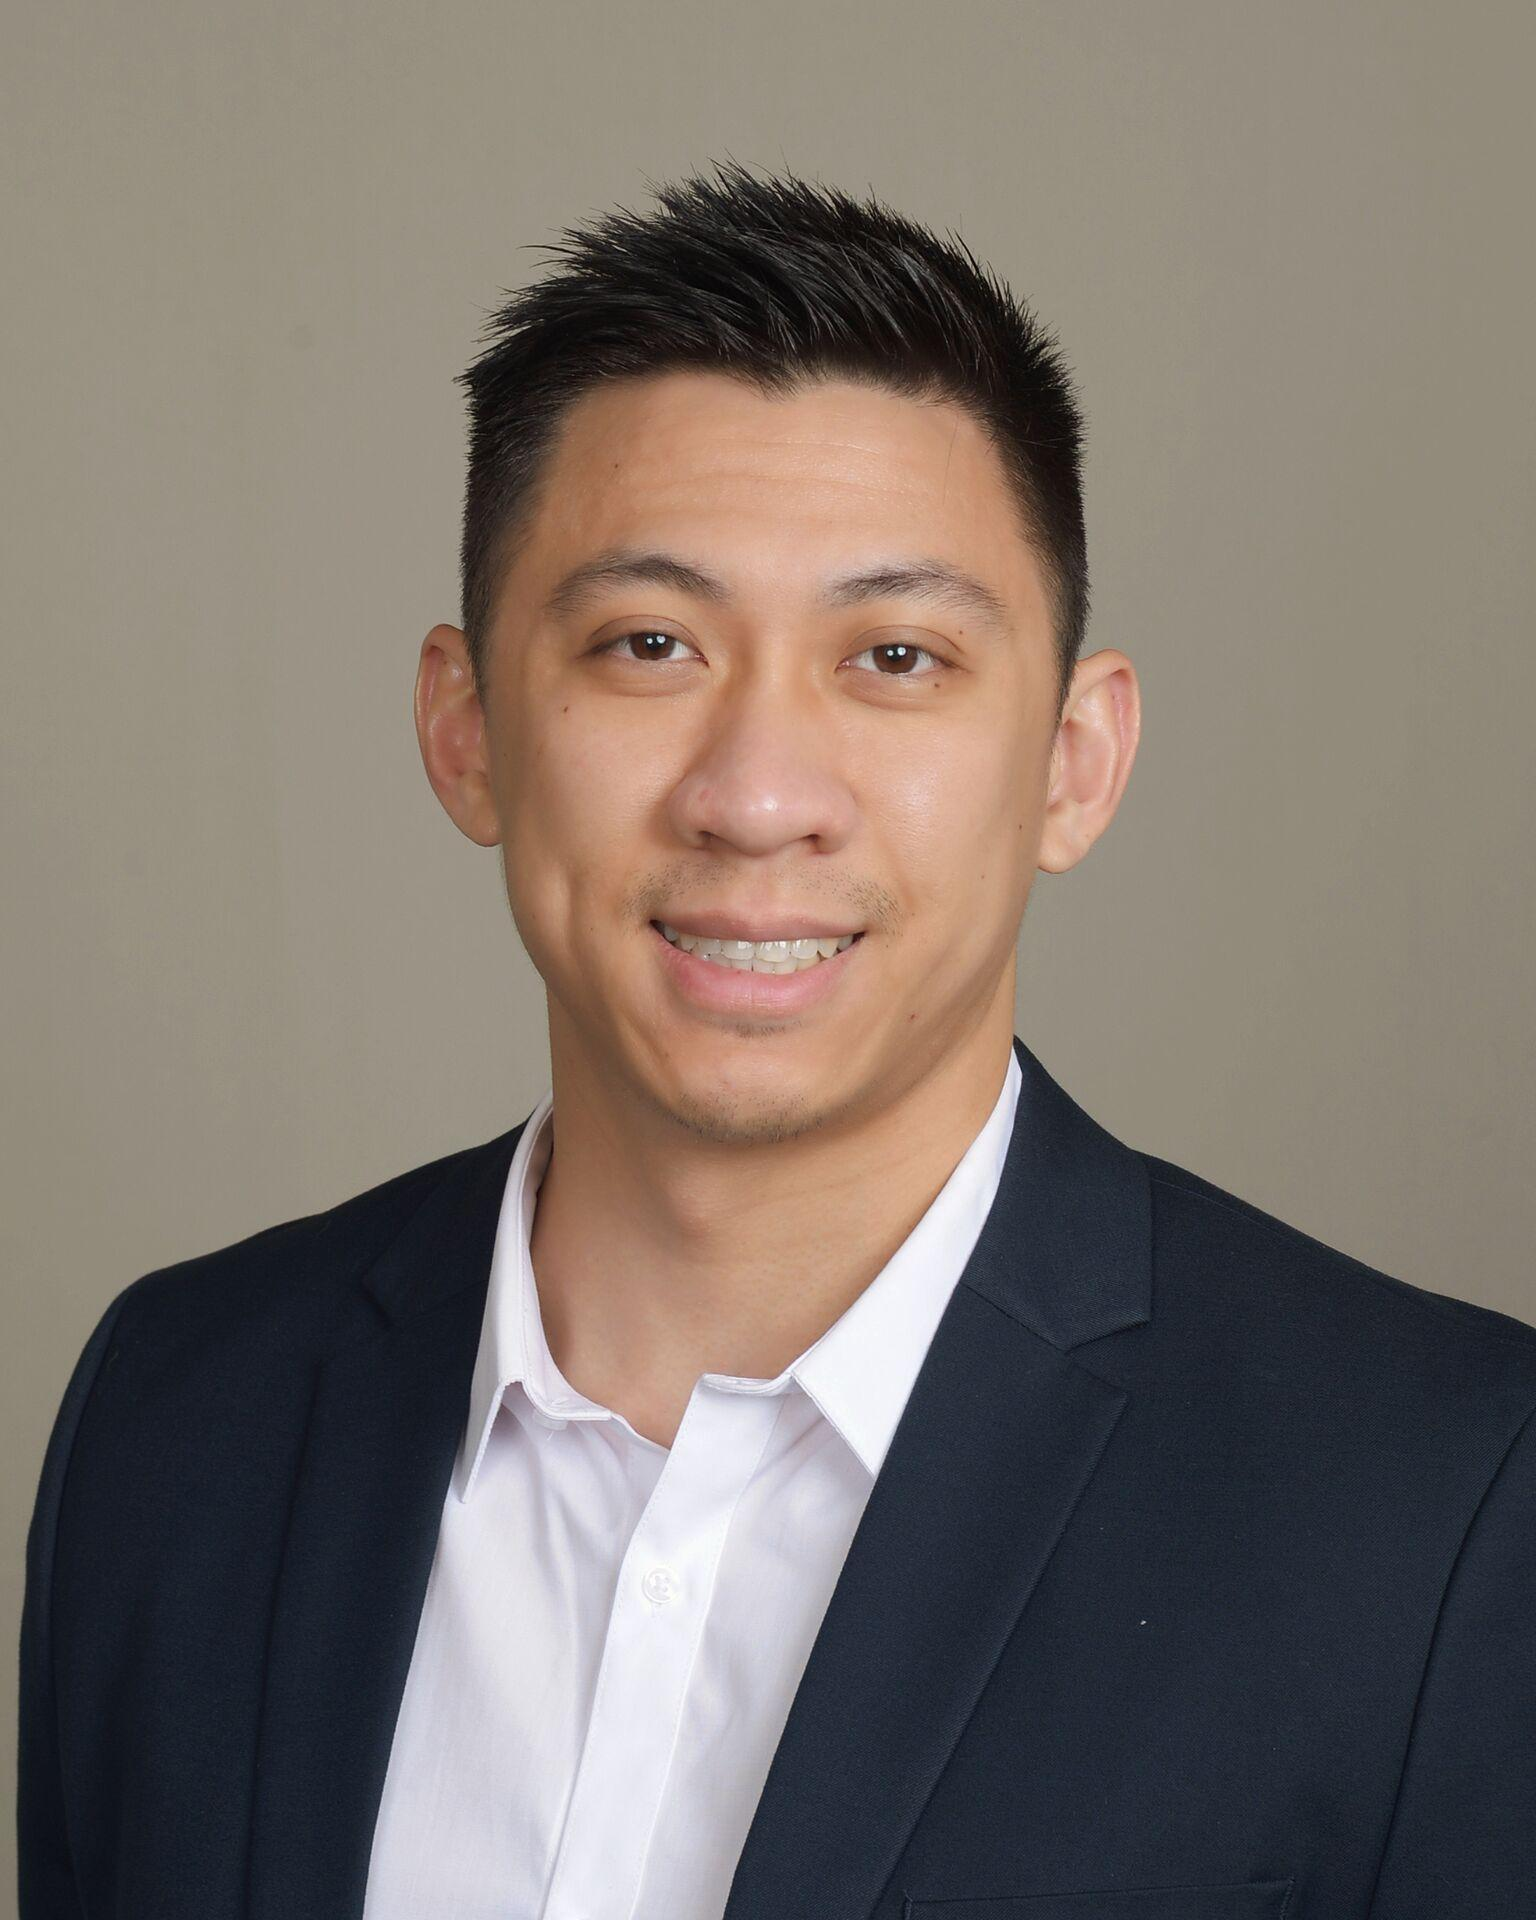 Profile Photo of Dr. Kevin Chuang - None